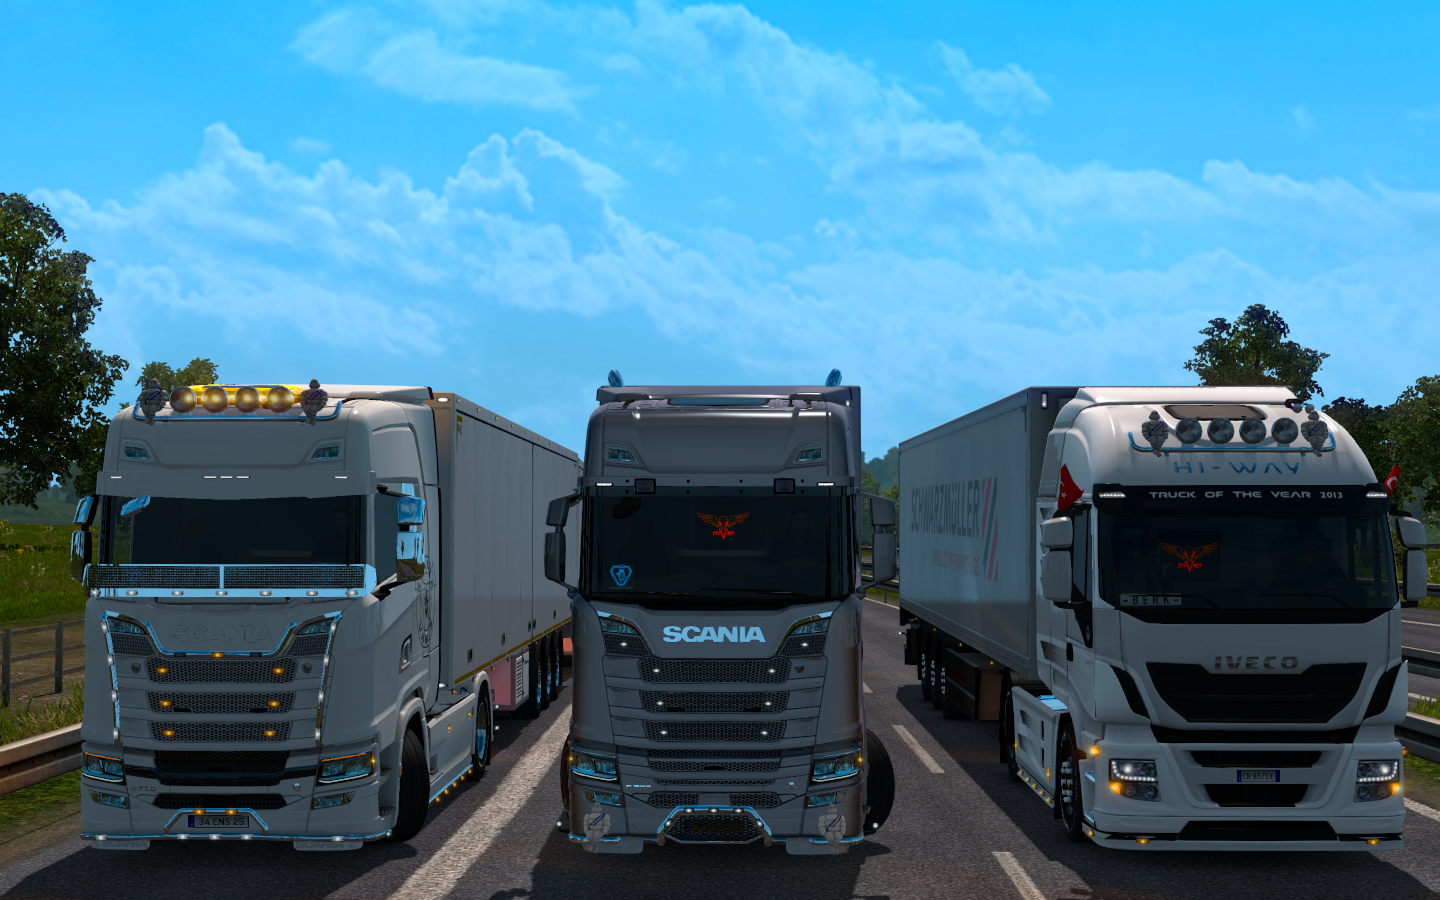 ets2_20190714_205204_00.png